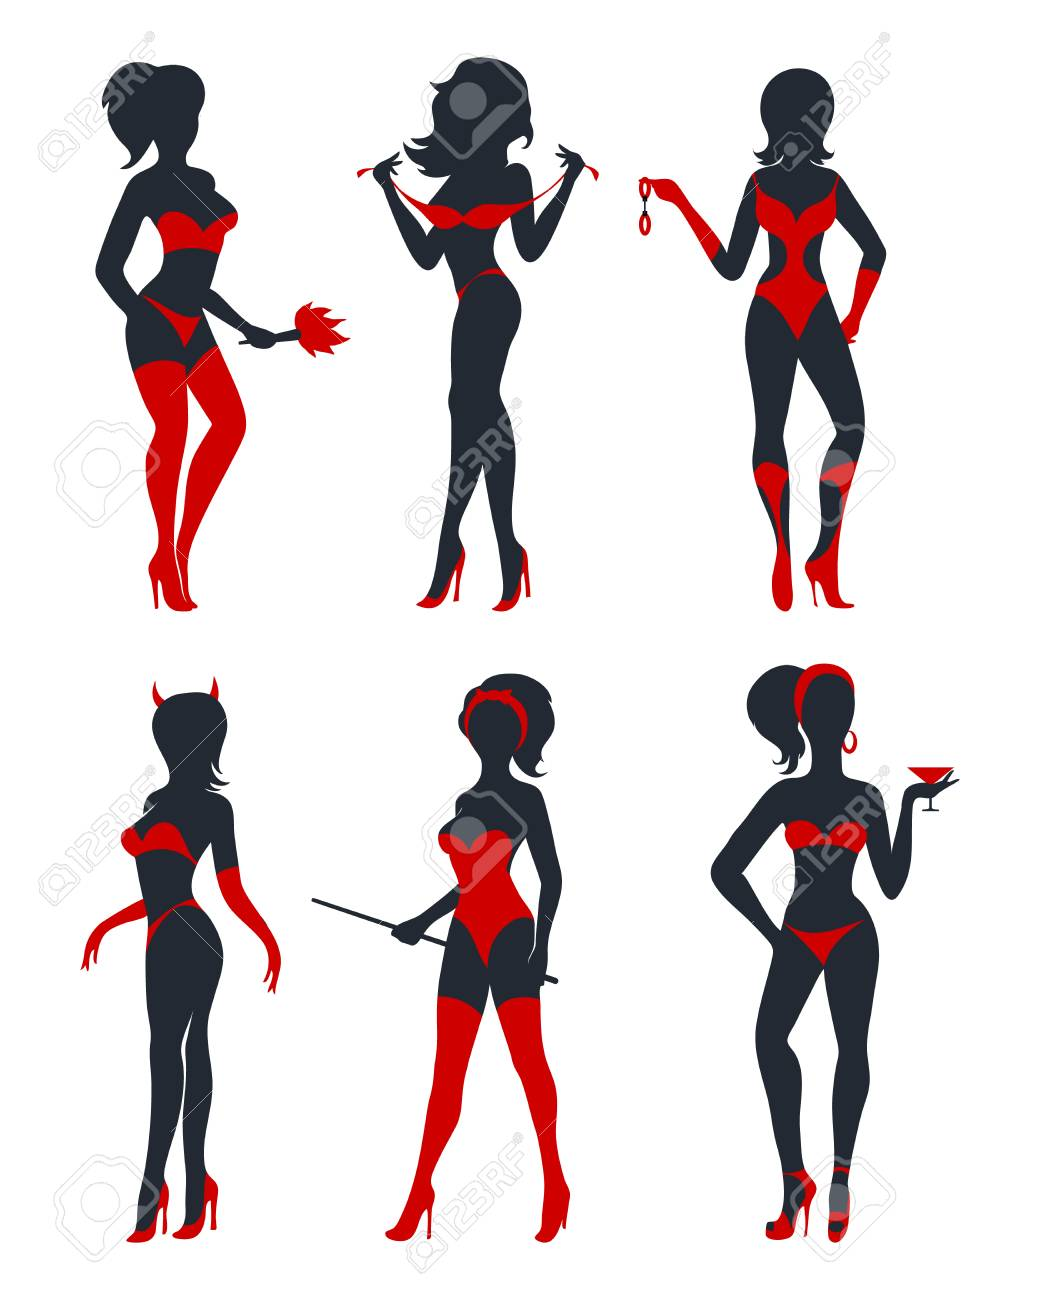 Set of beautiful devil women in lingerie, stockings and high heels. Black and red silhouettes isolated on white. Vector illustration. - 104681108